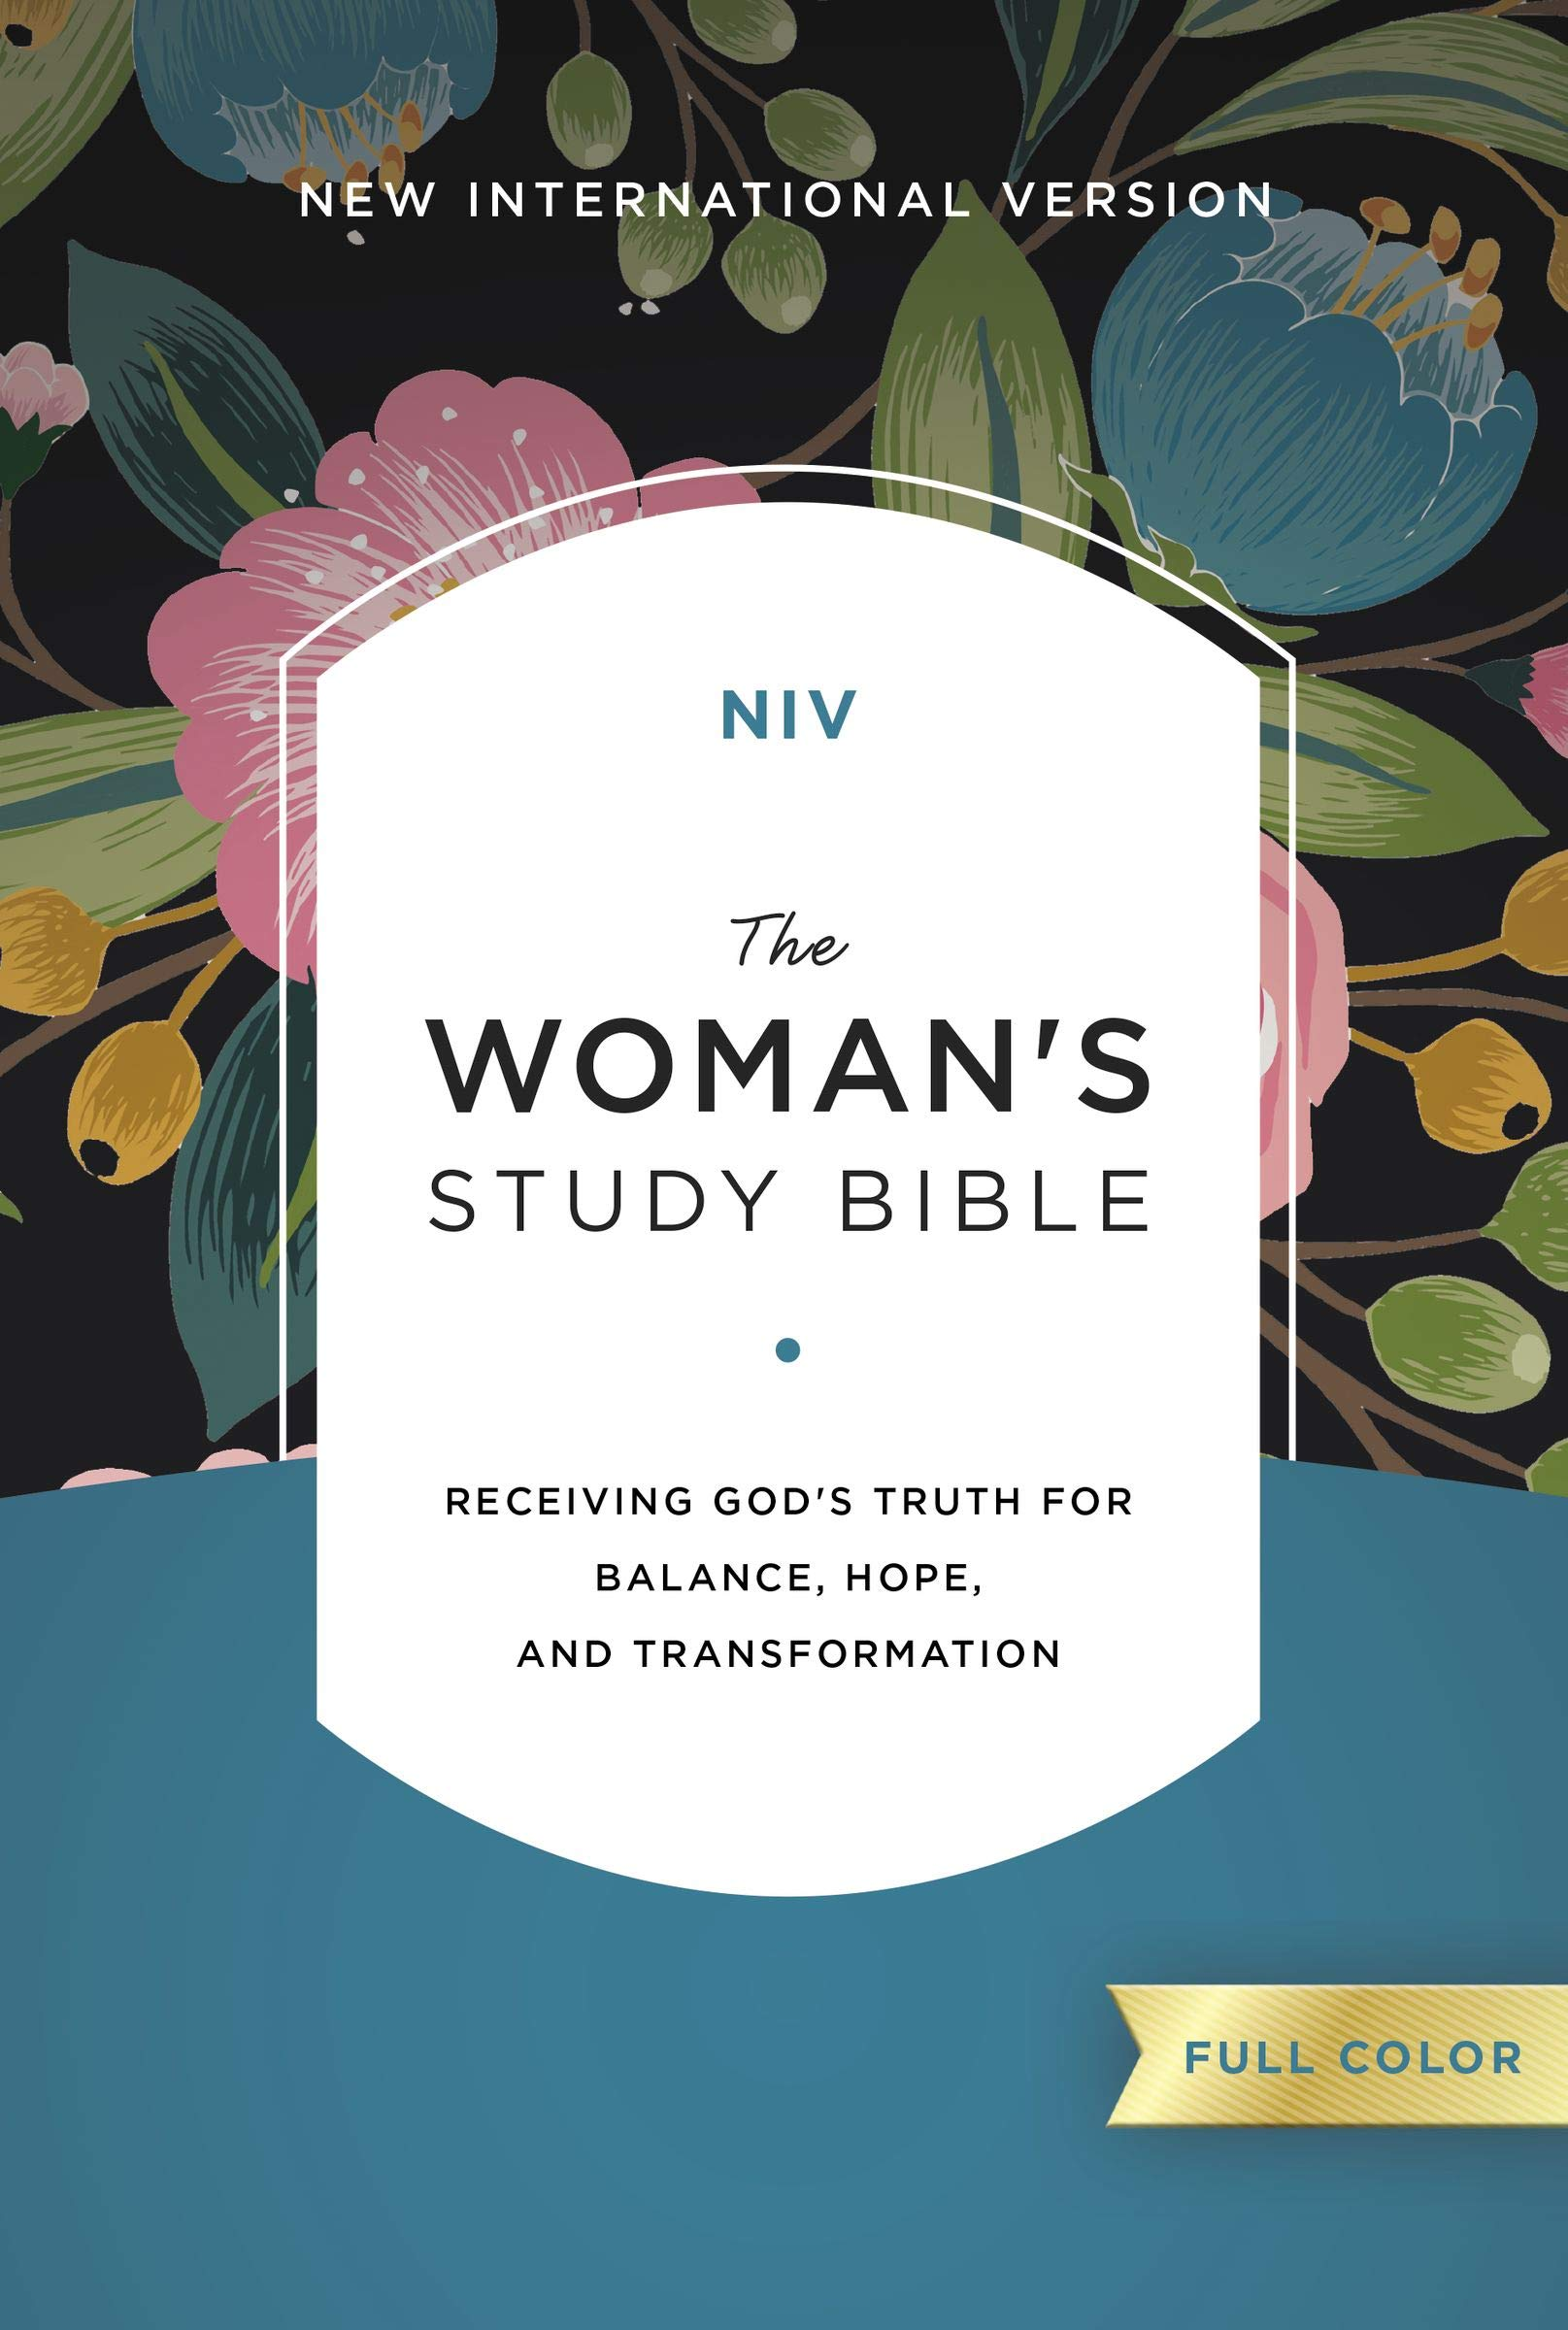 NIV, The Woman's Study Bible, Hardcover, Full-Color: Receiving God's Truth for Balance, Hope, and Transformation by HarperCollins Christian Pub.